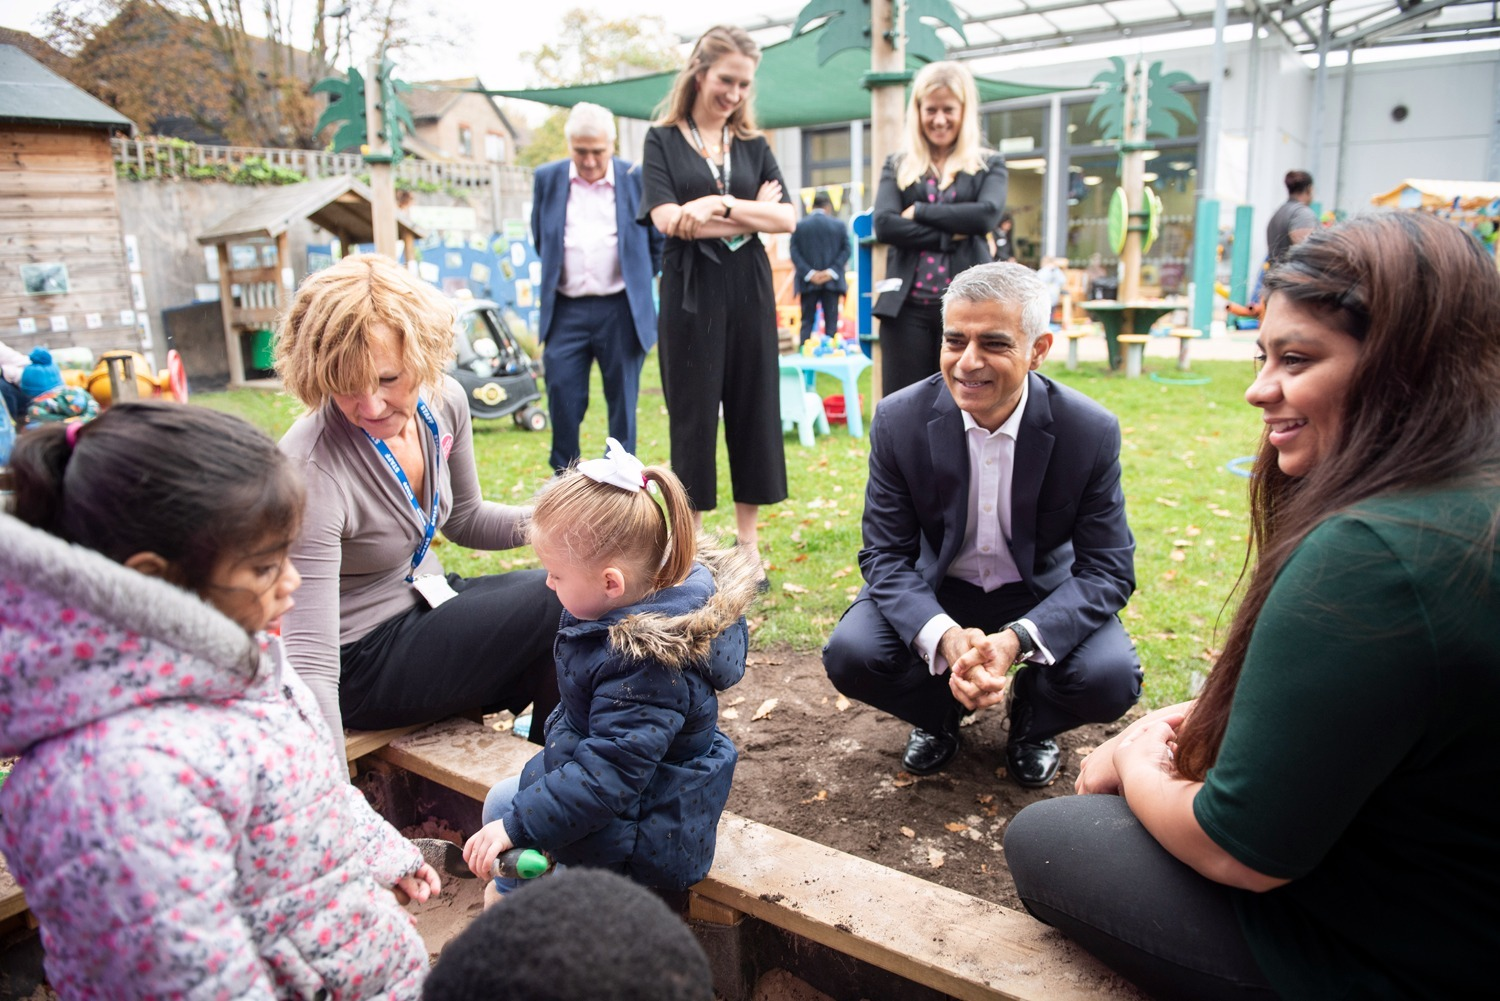 London mayor visits Acacia Pre-School Children's Centre to launch new initiative